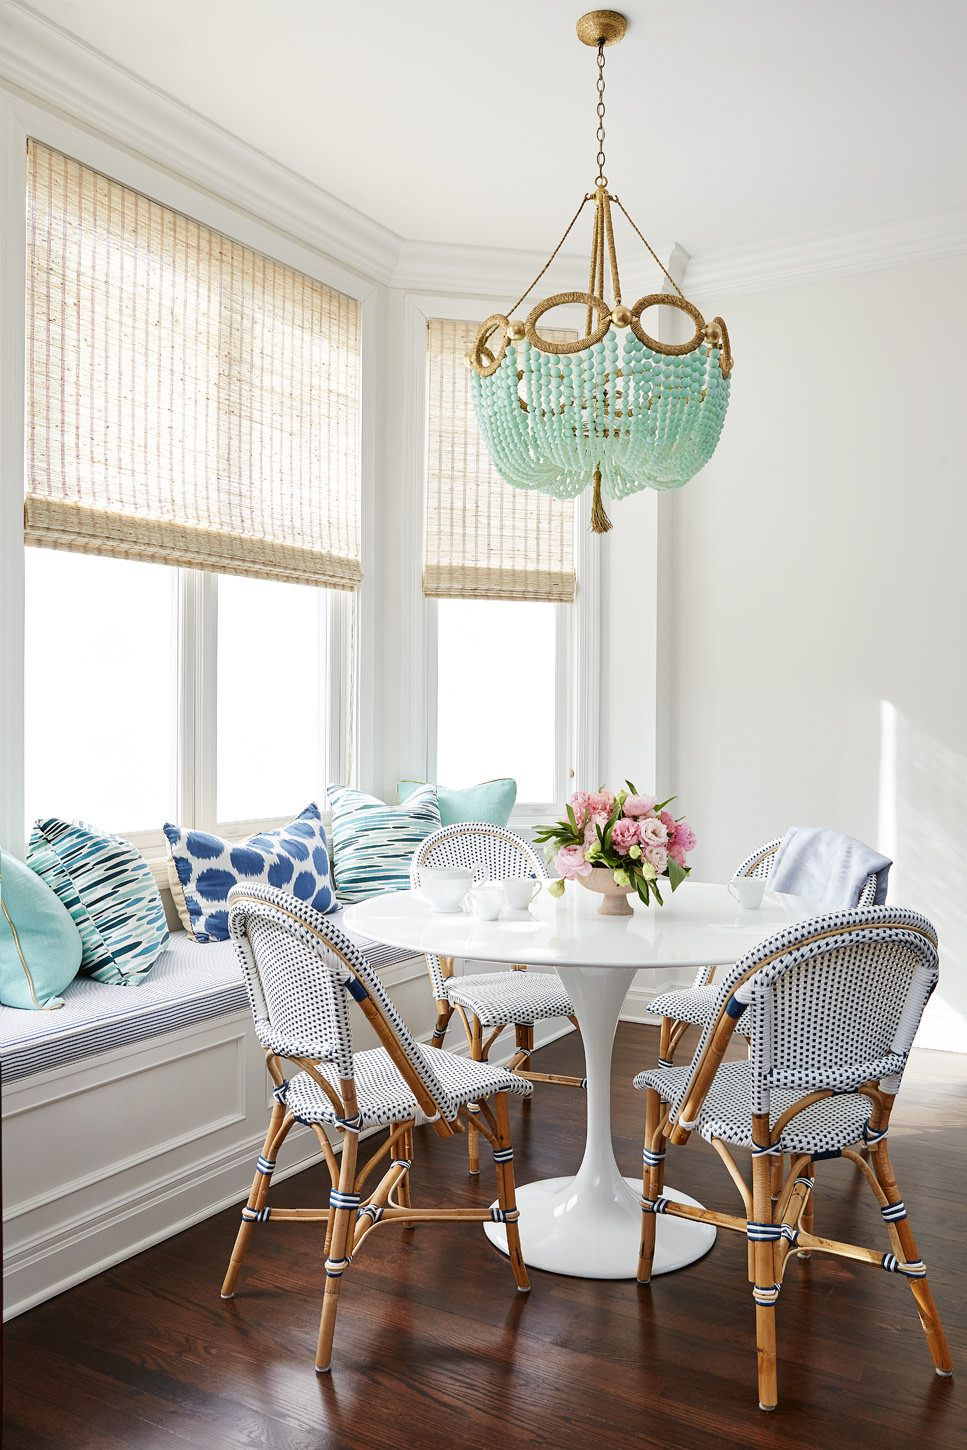 Room · Inspiration And Tips For Decorating A Casual Coastal Dining Room